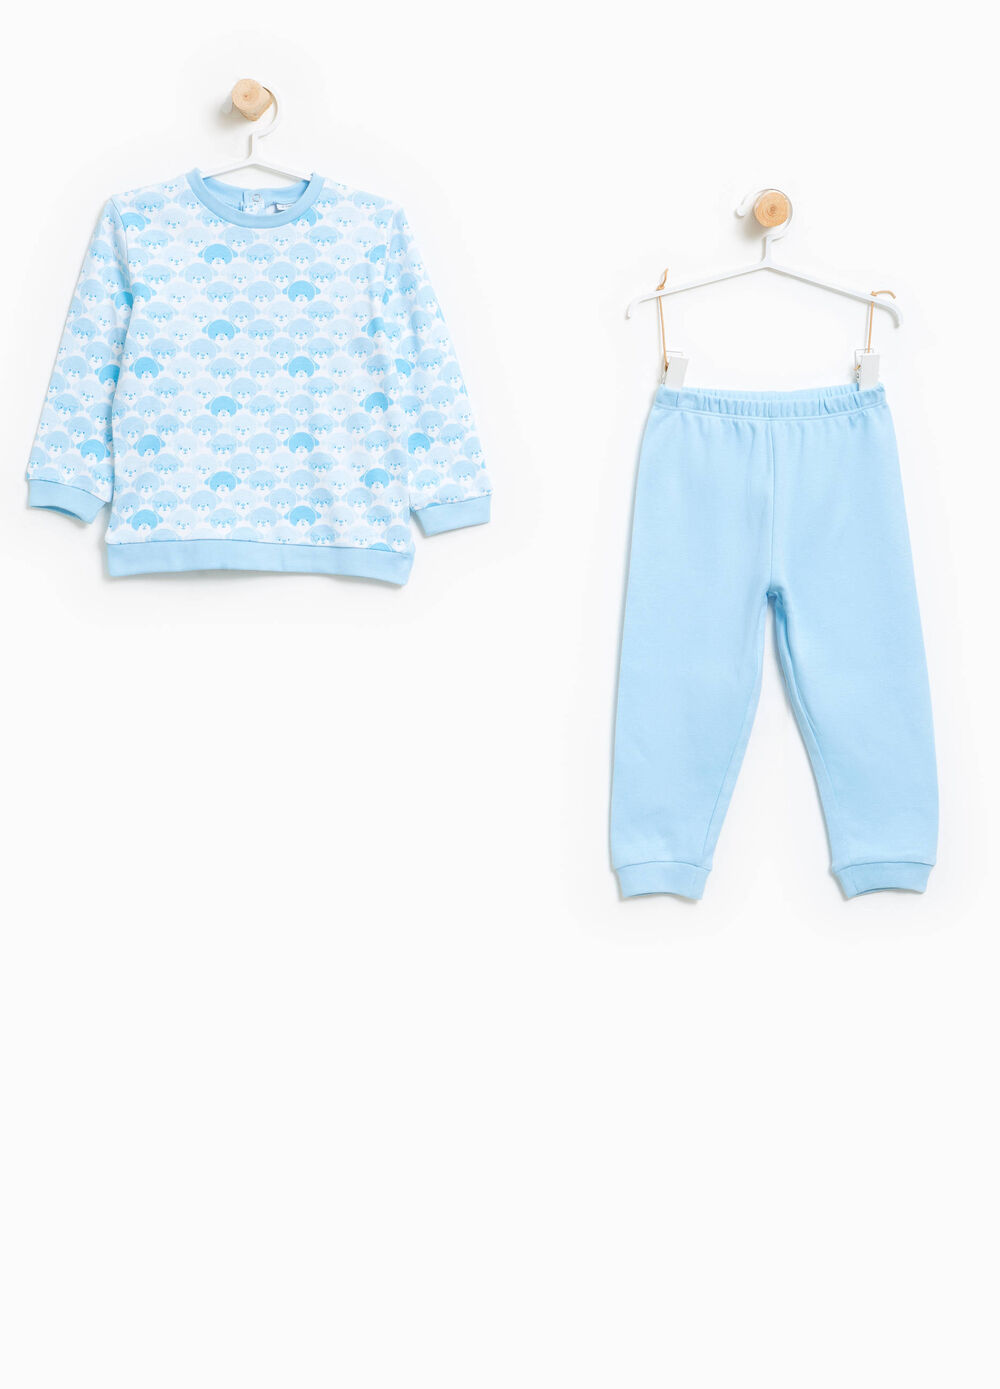 Cotton pyjamas with teddy bears